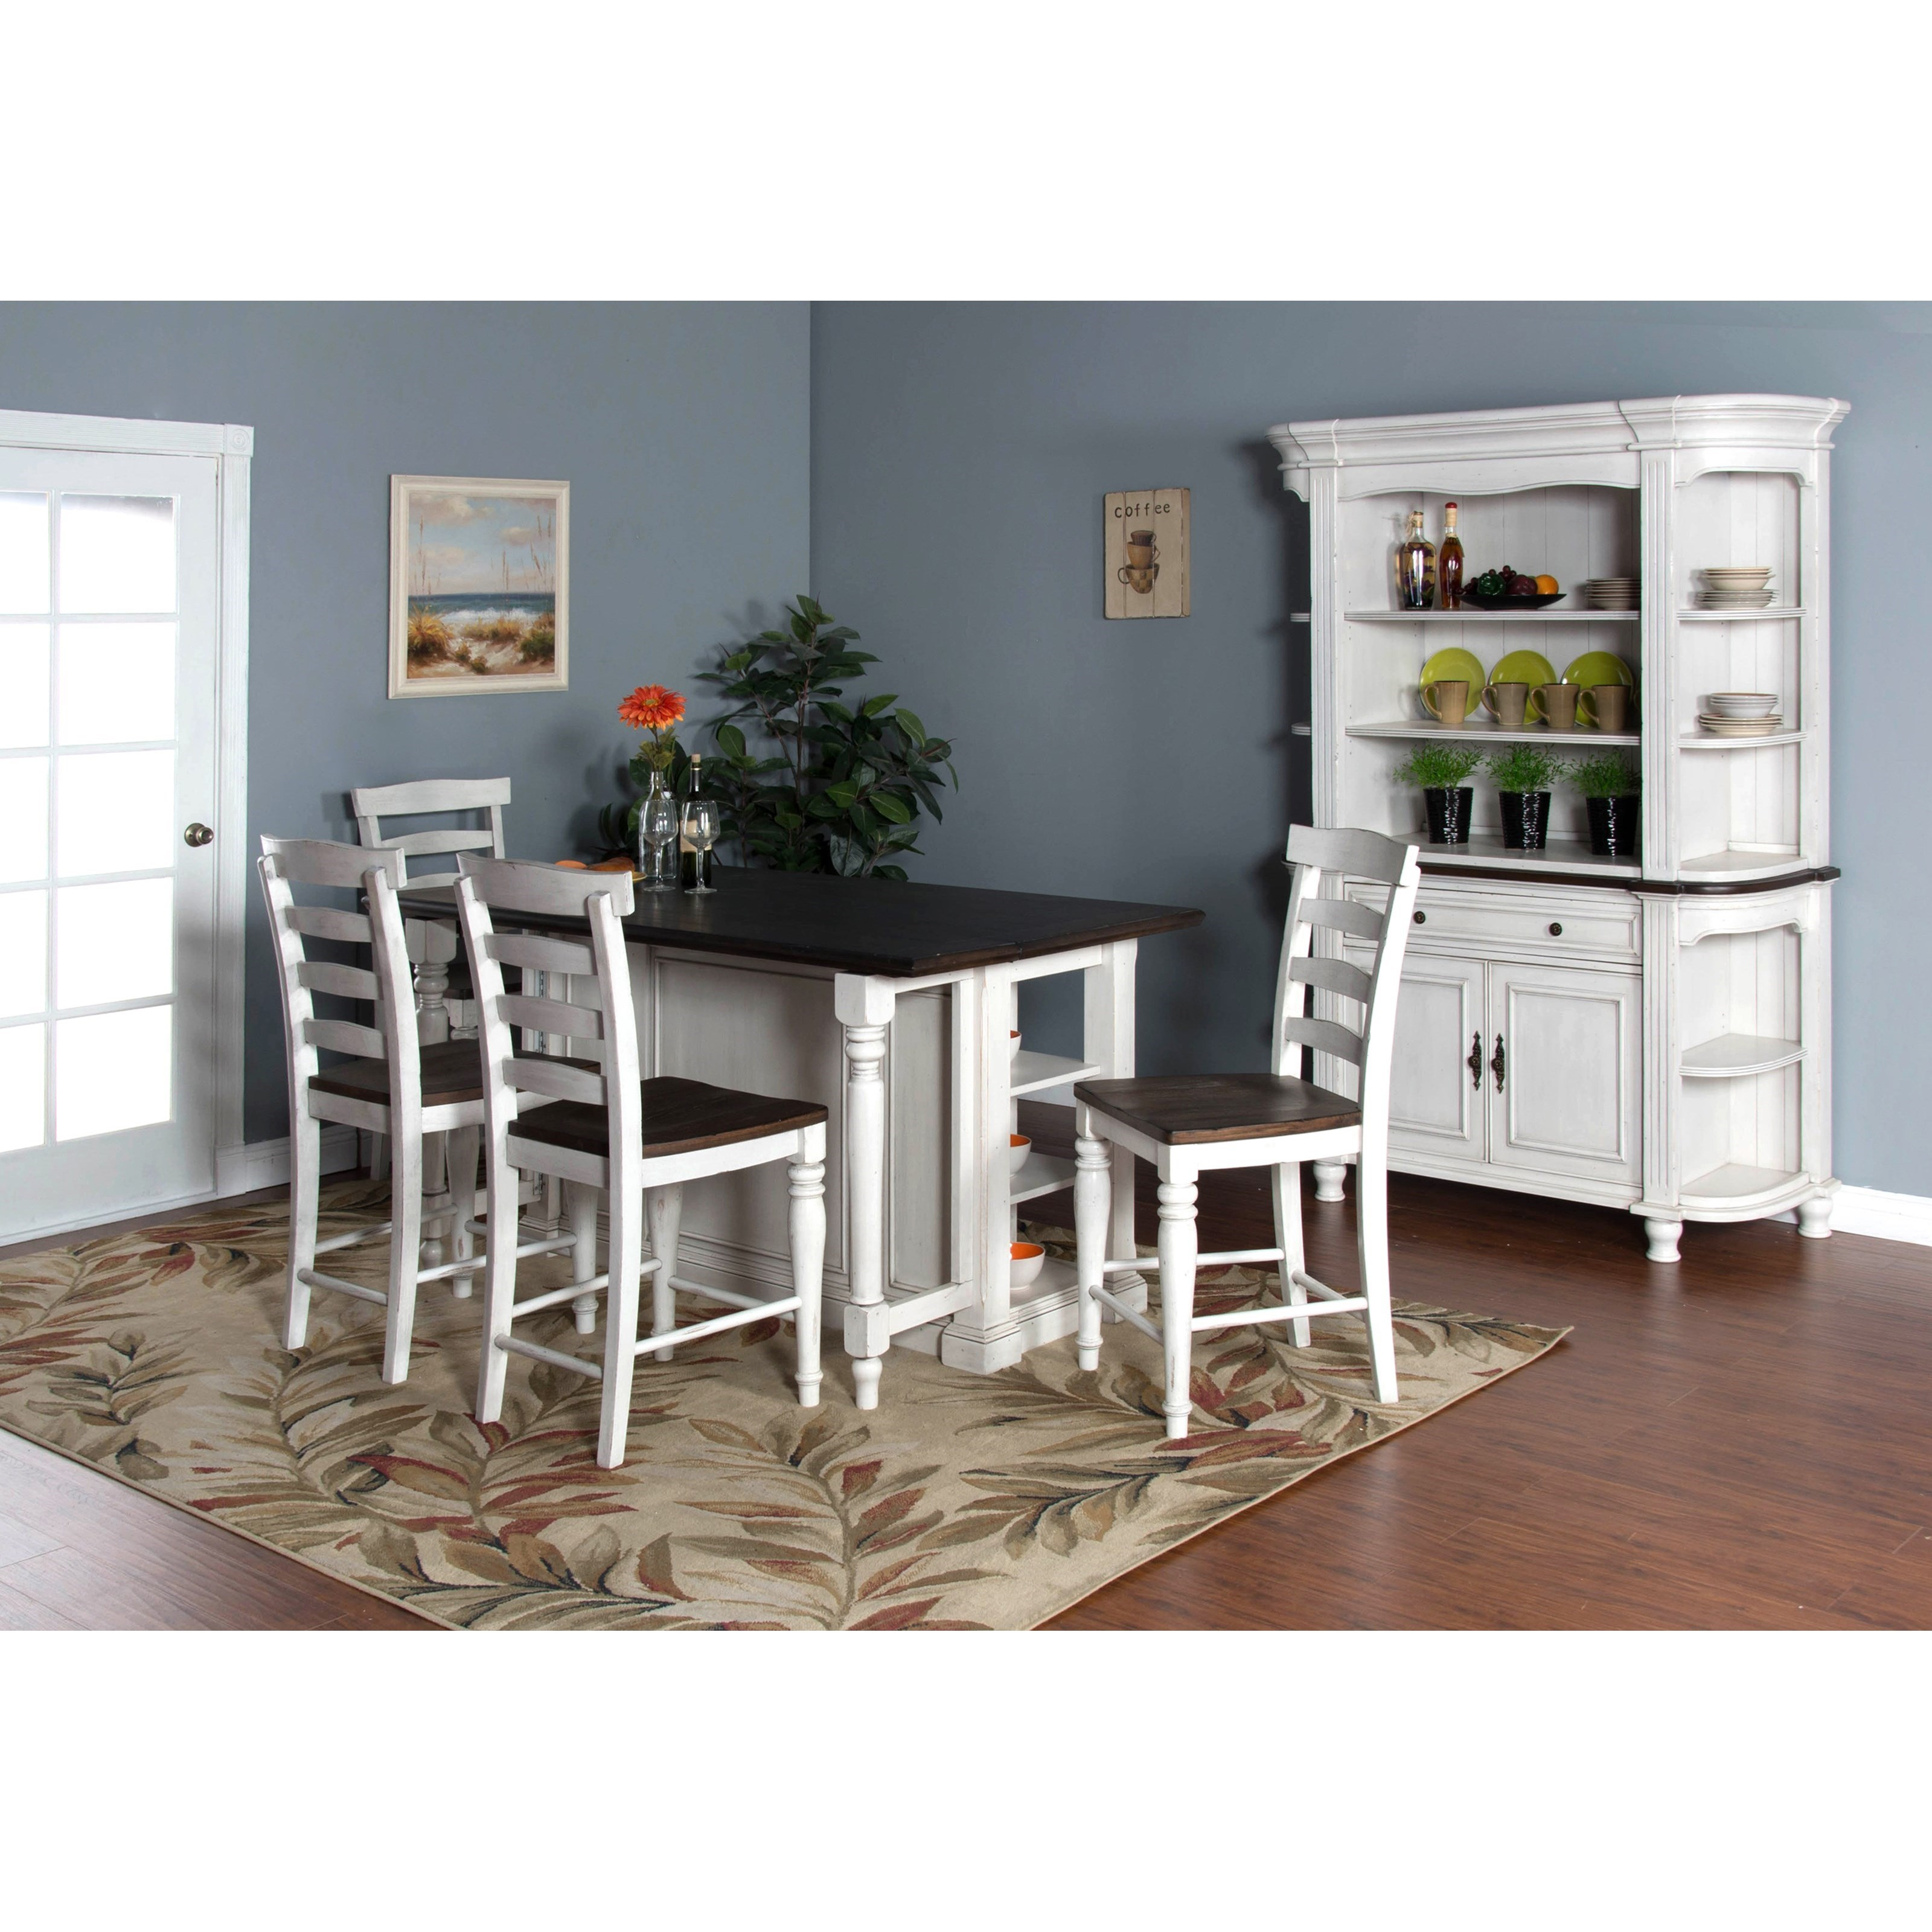 sunny designs bourbon county casual dining room group. Black Bedroom Furniture Sets. Home Design Ideas